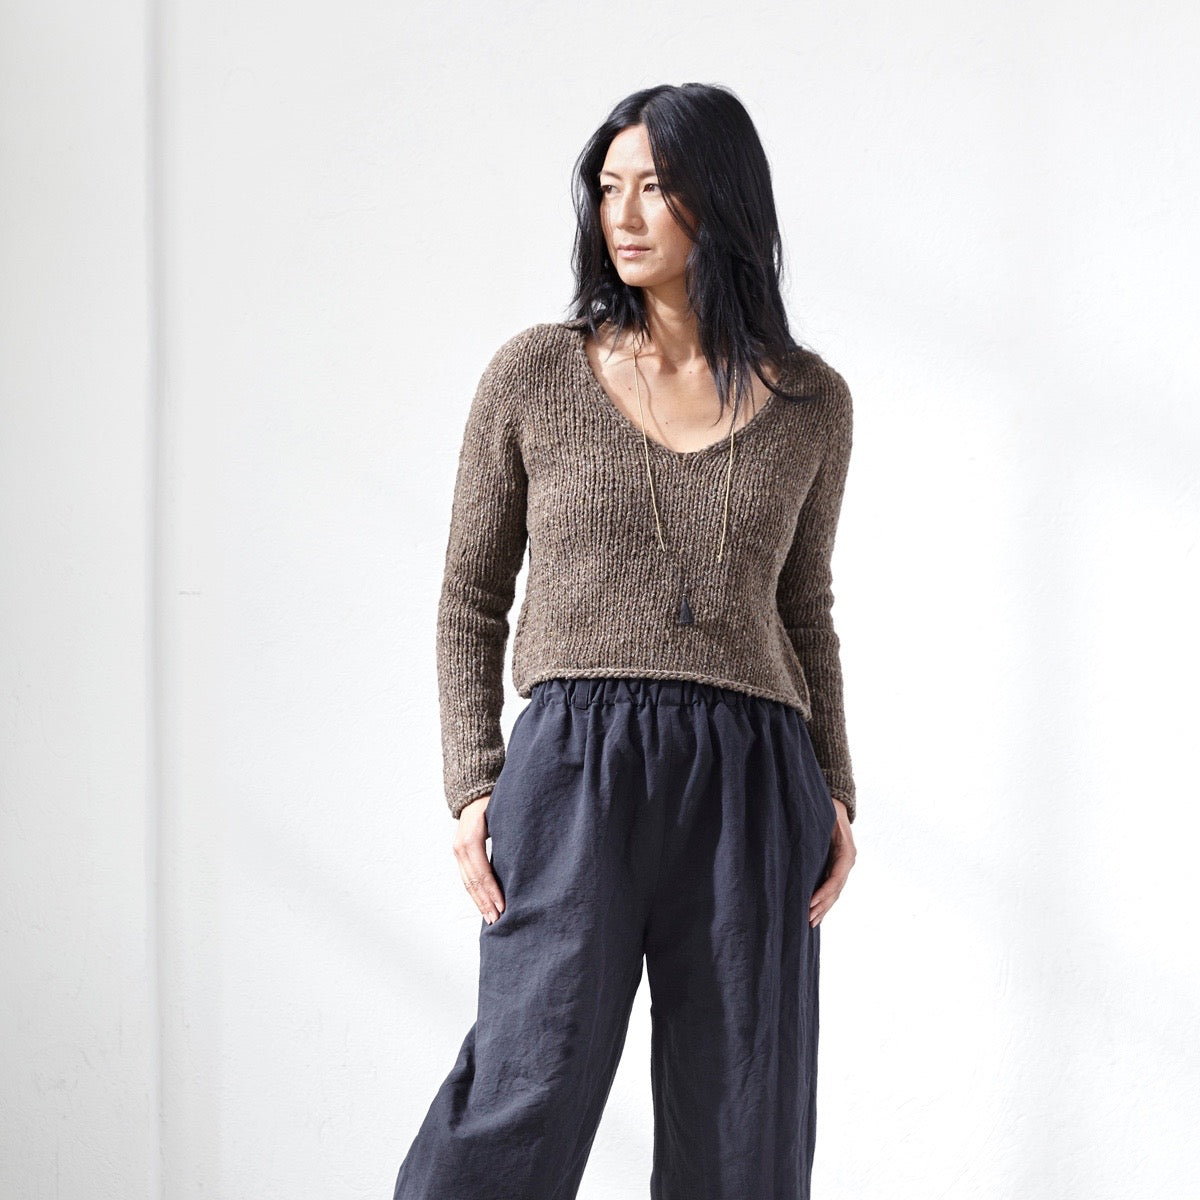 Cocoknits Sweater Workshop - April 4th + 11th, May 2nd + 16th, June 6th +13th